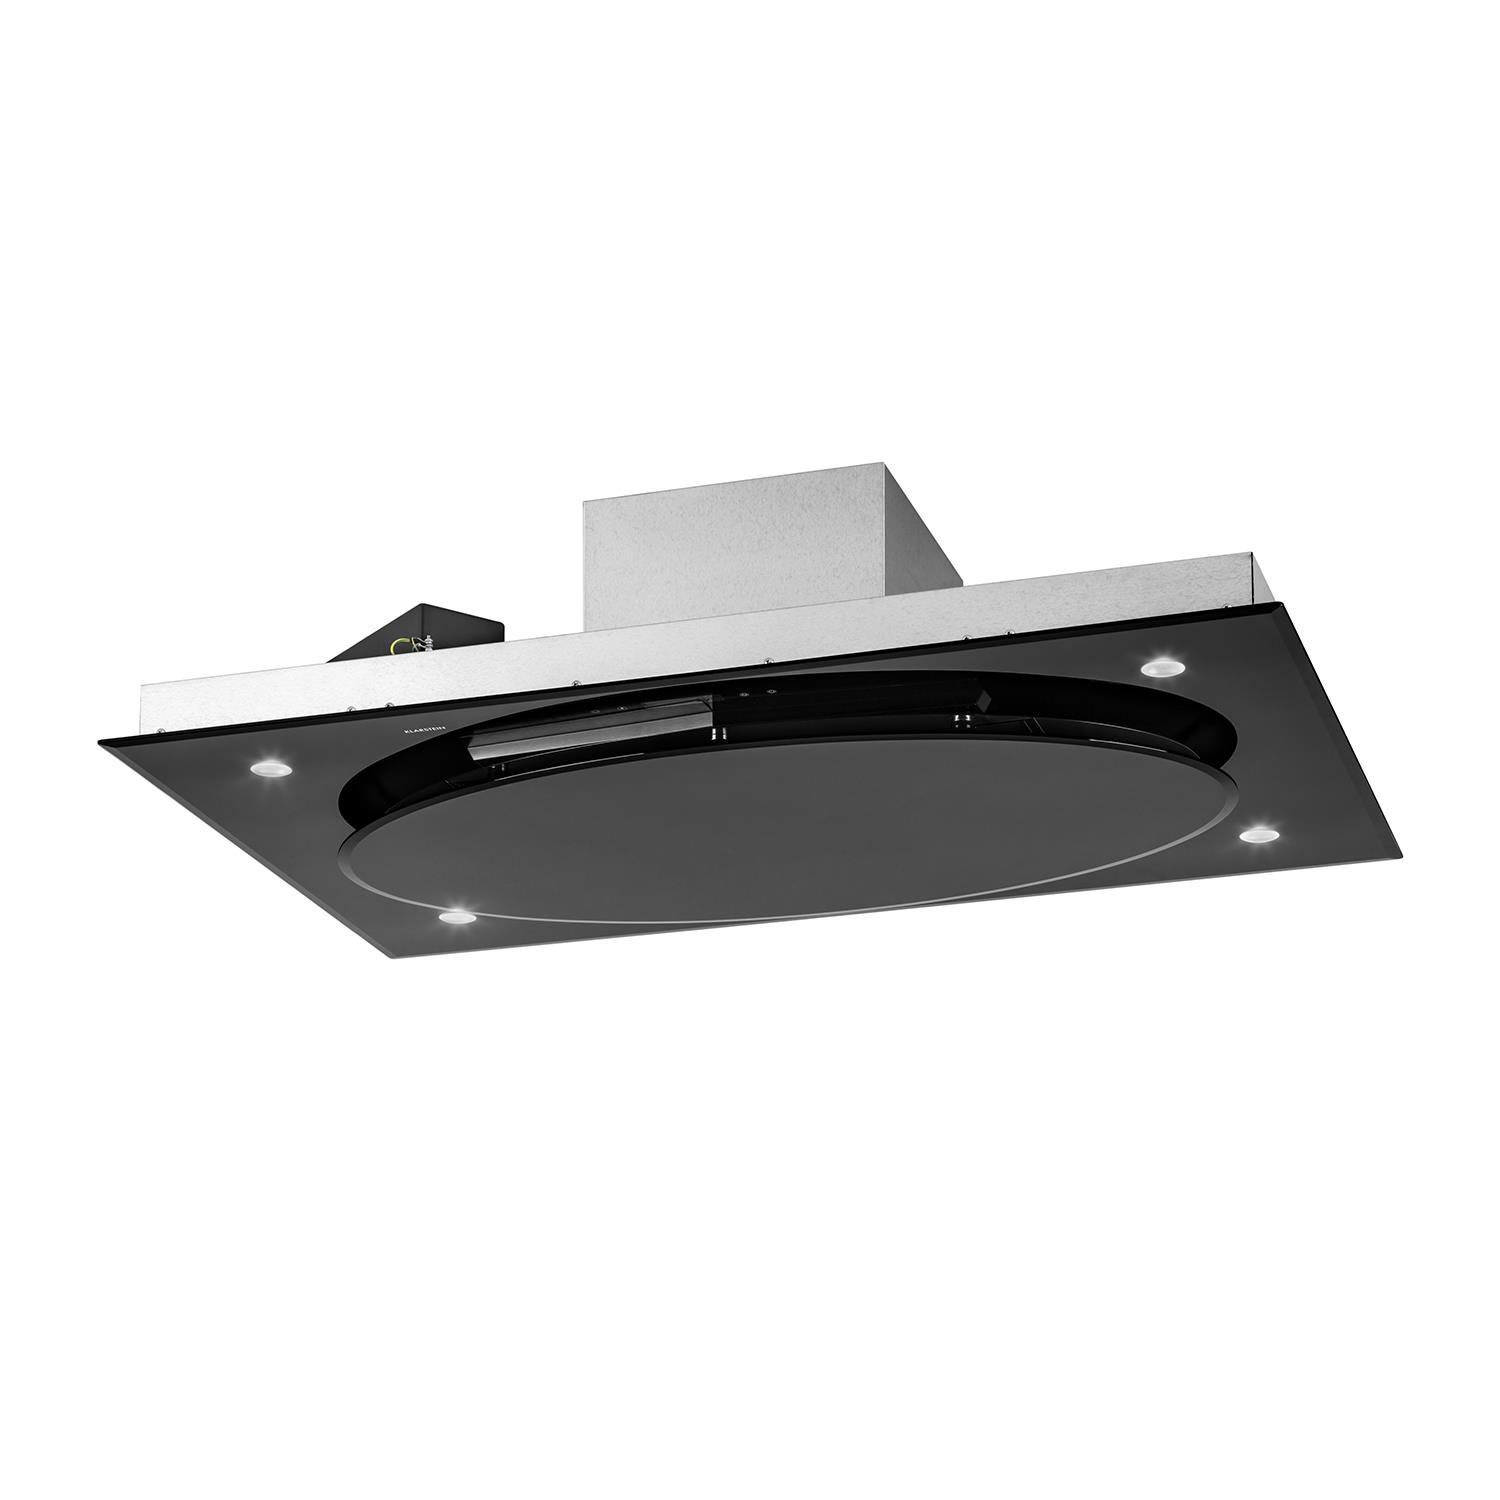 Cooker Hood With A Window ~ Klarstein stainless steel extractor cooker hood kitchen